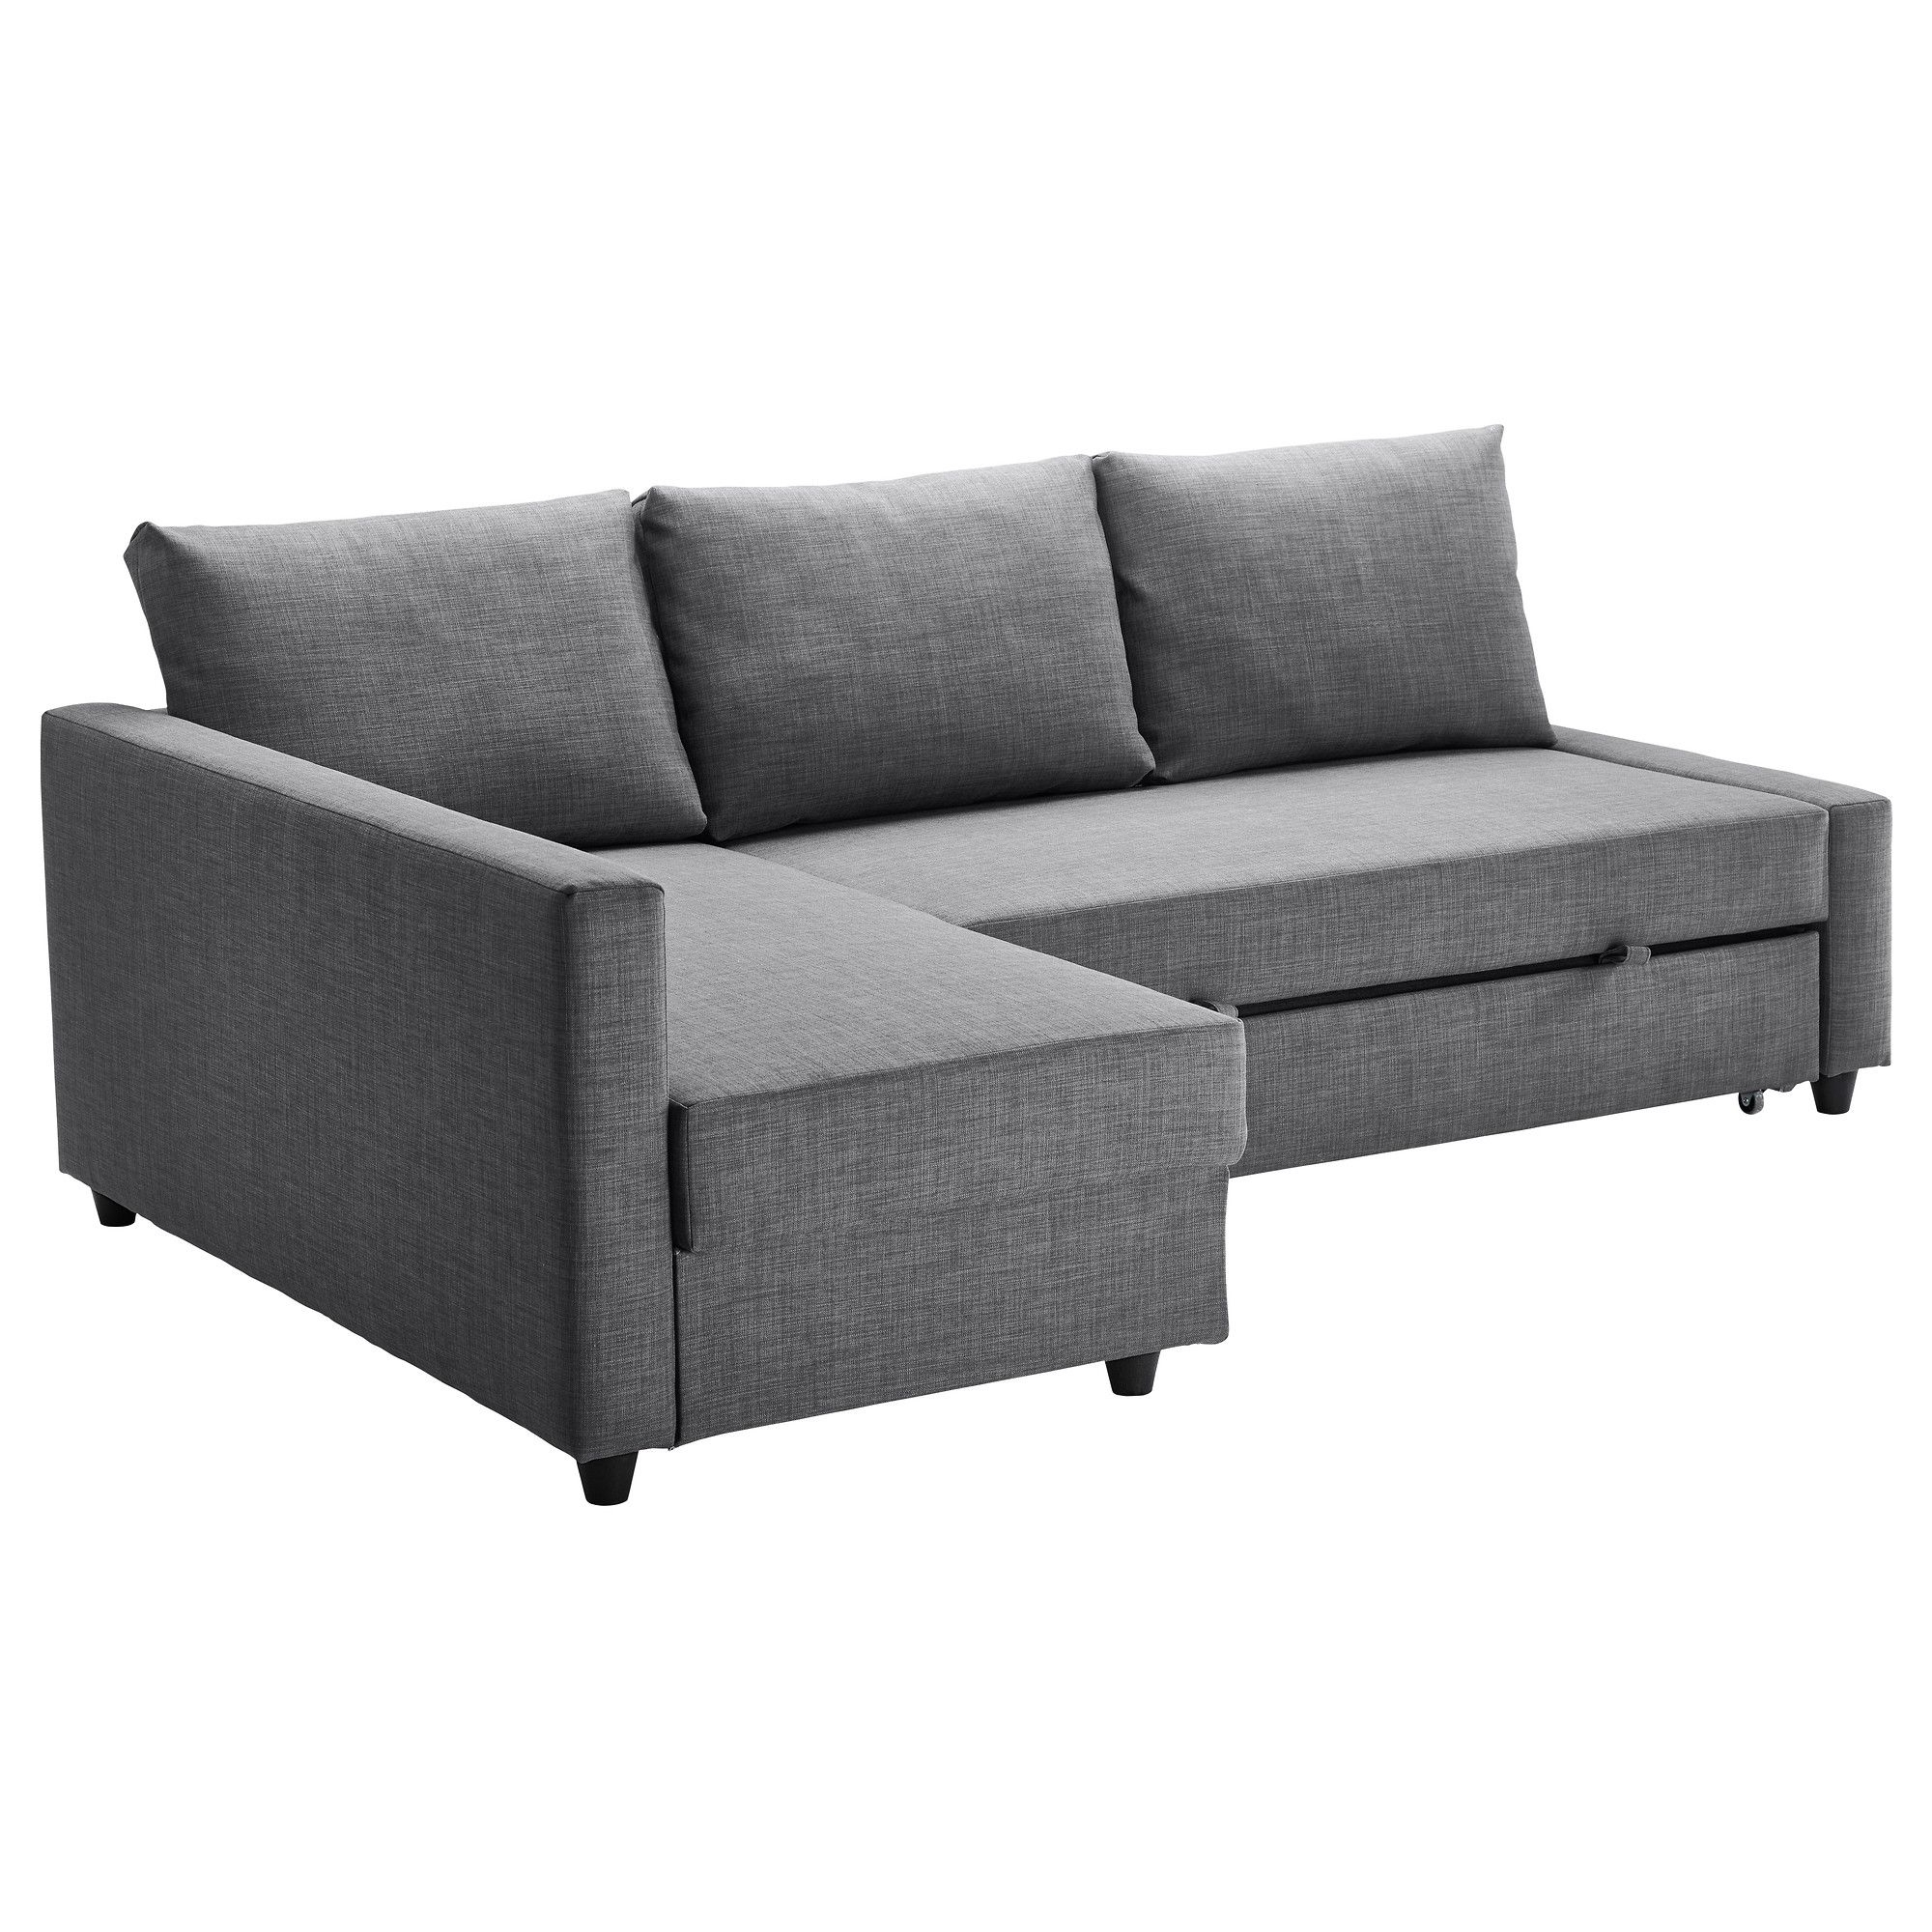 Ikea – Friheten, Sofa Bed With Chaise, Skiftebo Dark Gray, , , You Pertaining To Best And Newest Sleeper Sofas With Chaise (View 6 of 15)